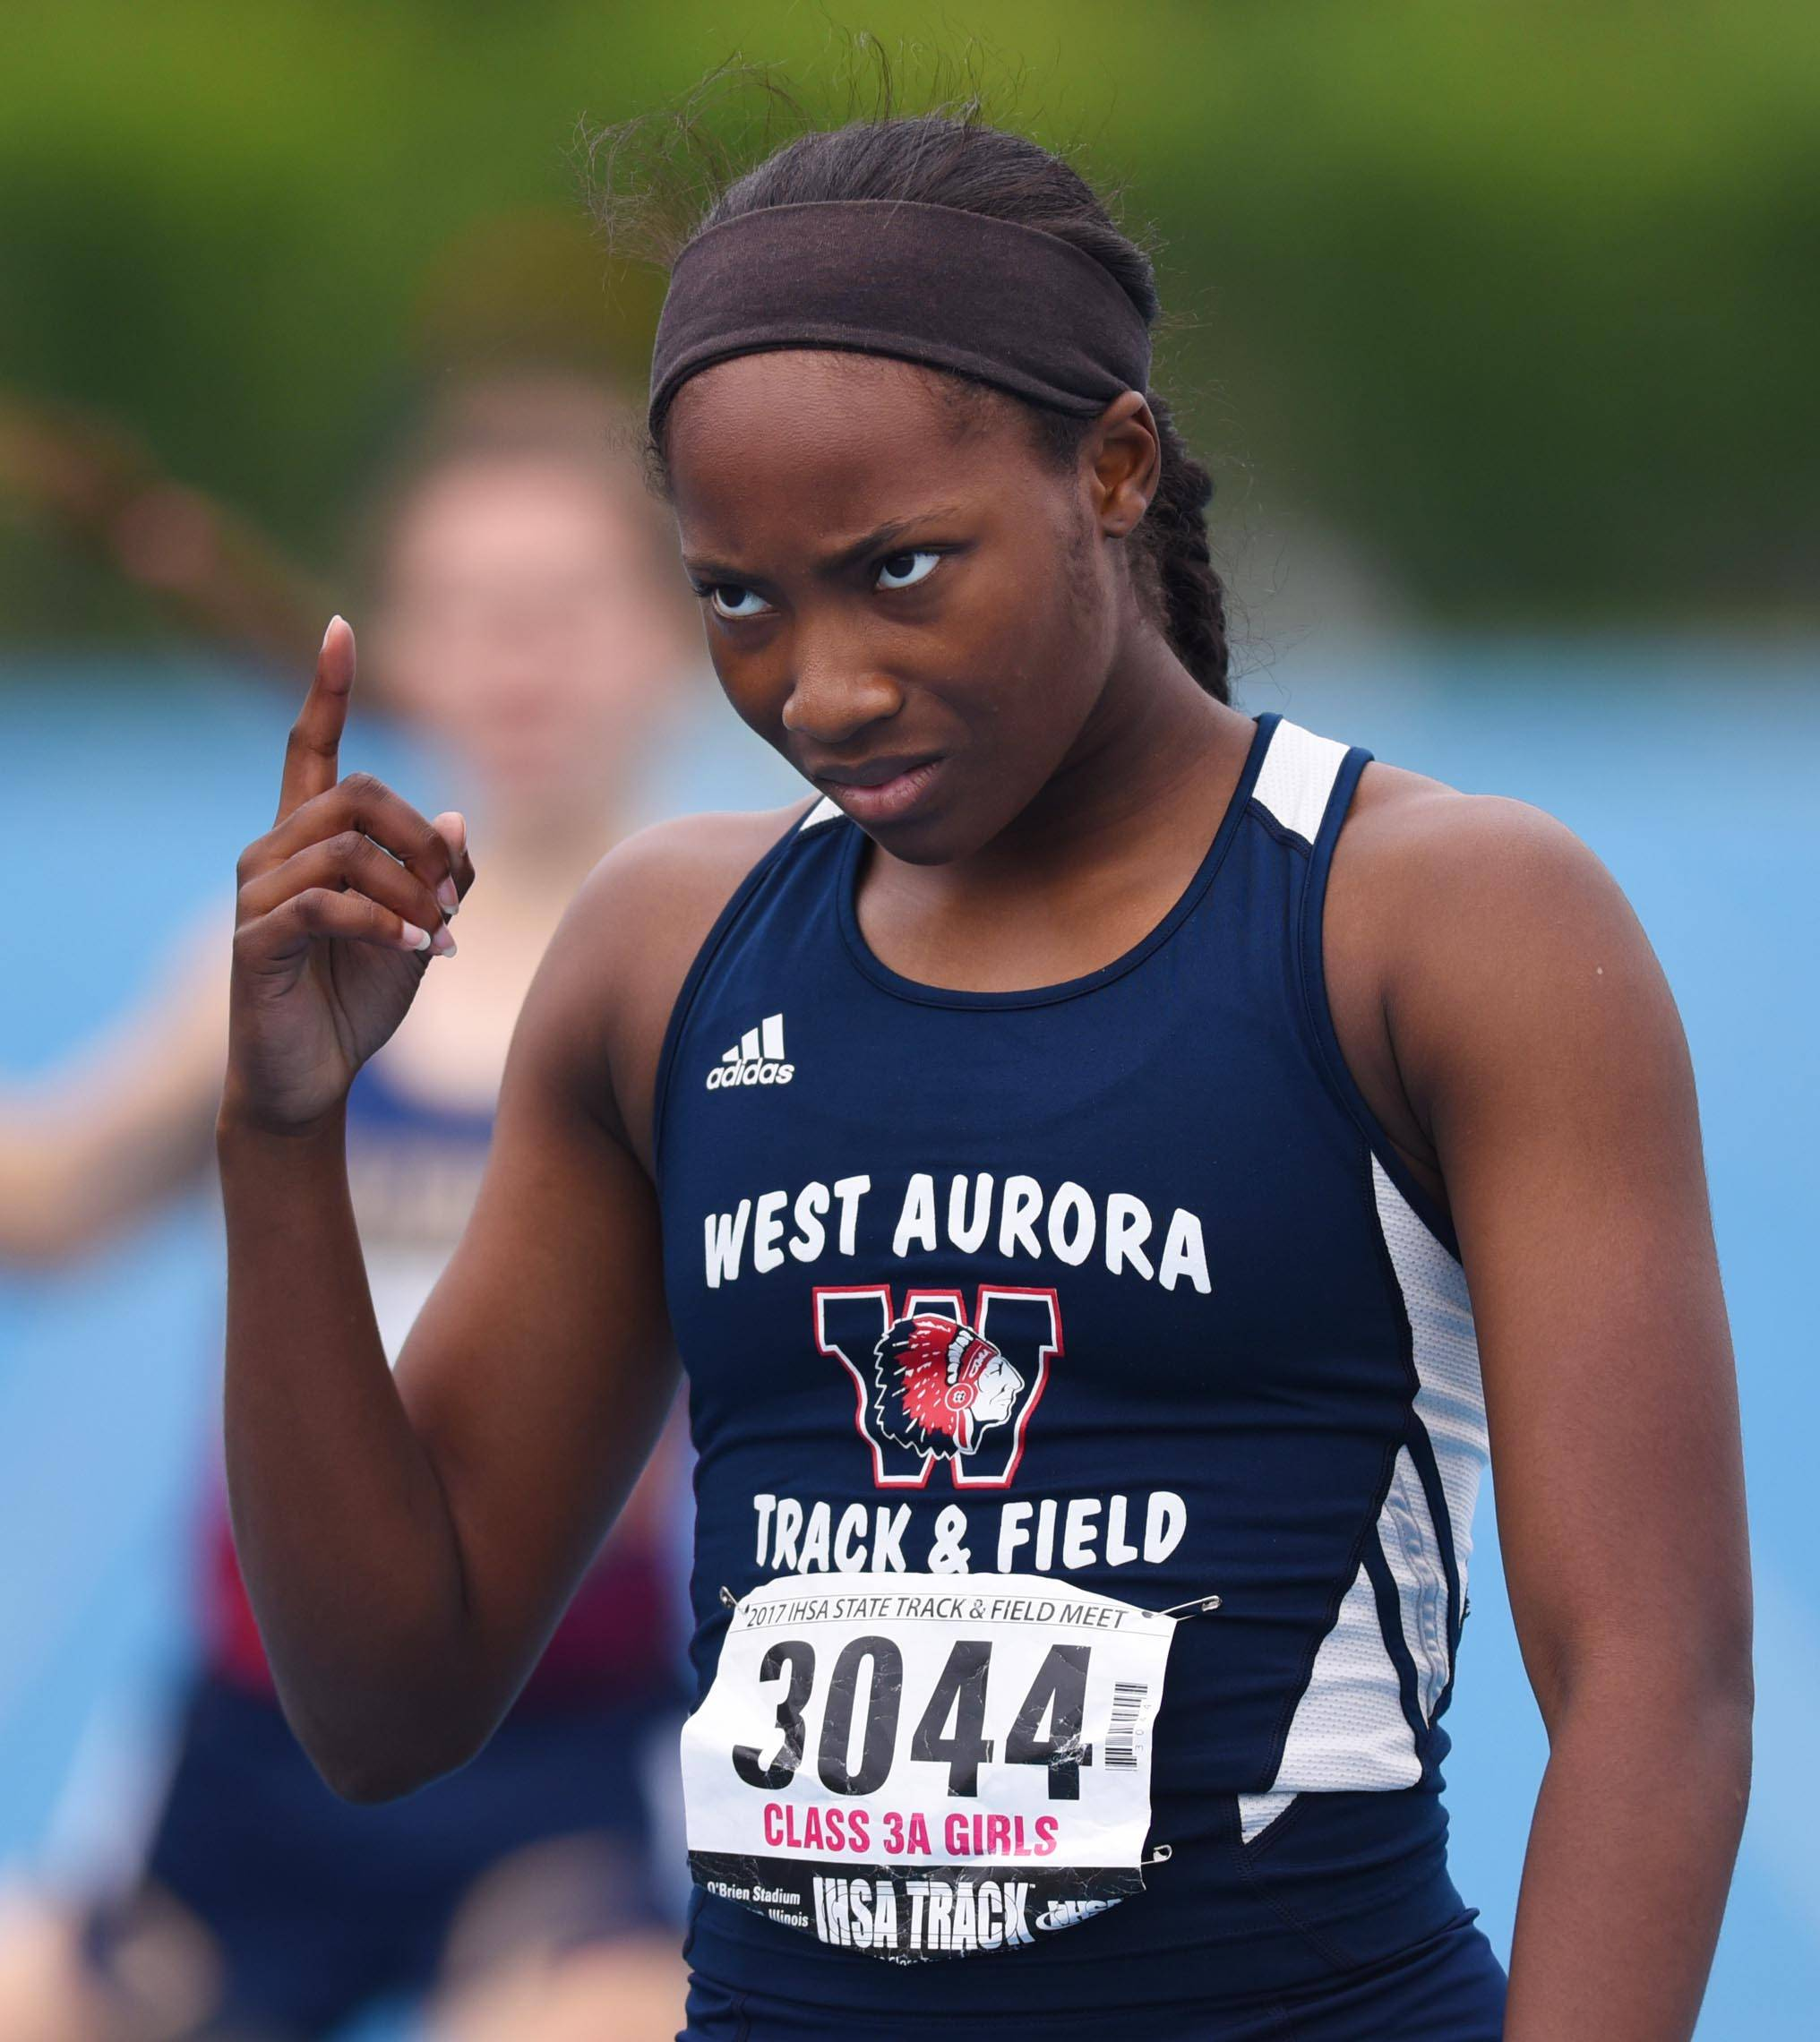 West Aurora's Dajour Miles reacts to her win in the Class 3A 400-Meter Dash at the prelims of the state girls track and field meet Friday at Eastern Illinois University in Charleston.